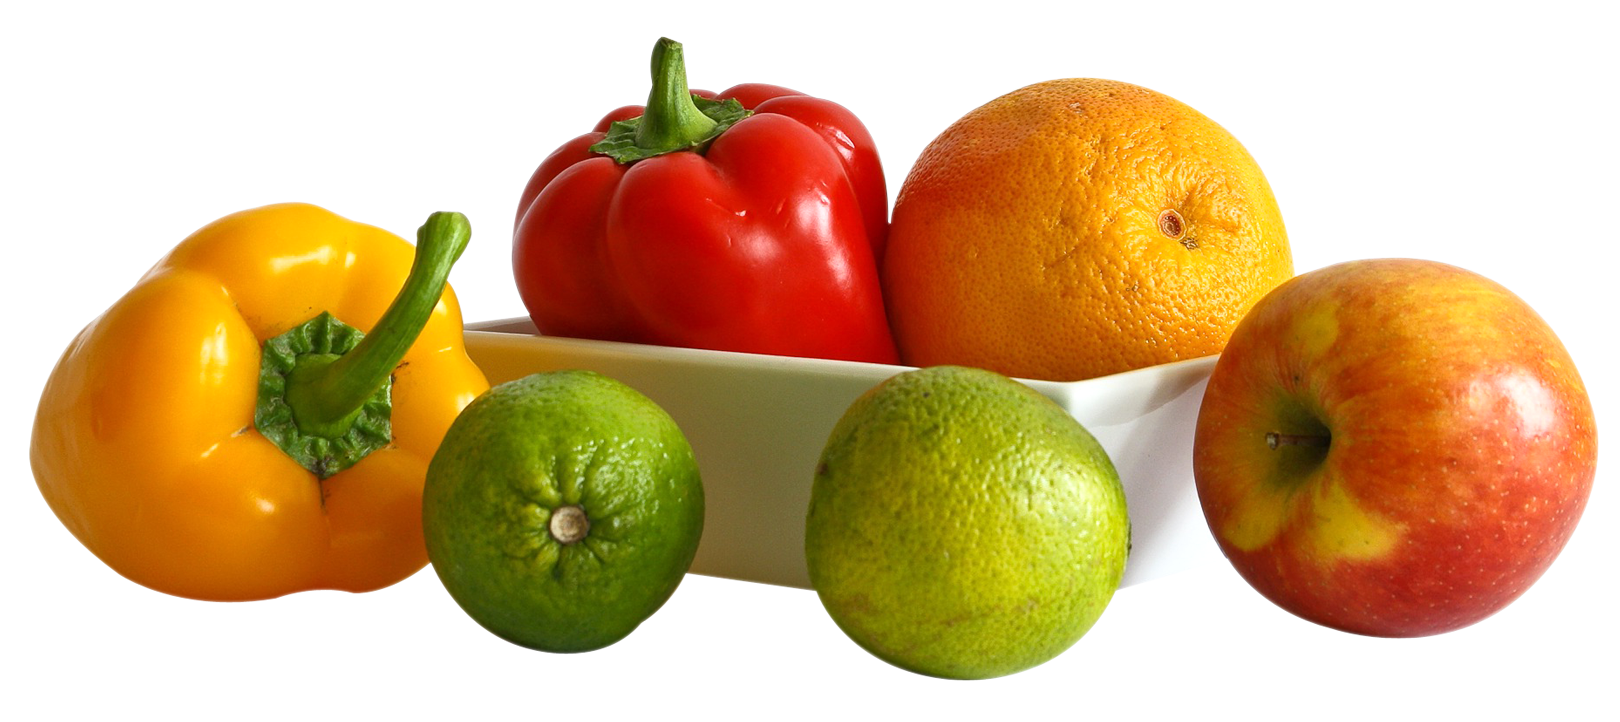 Fruits And Vegetables PNG Image